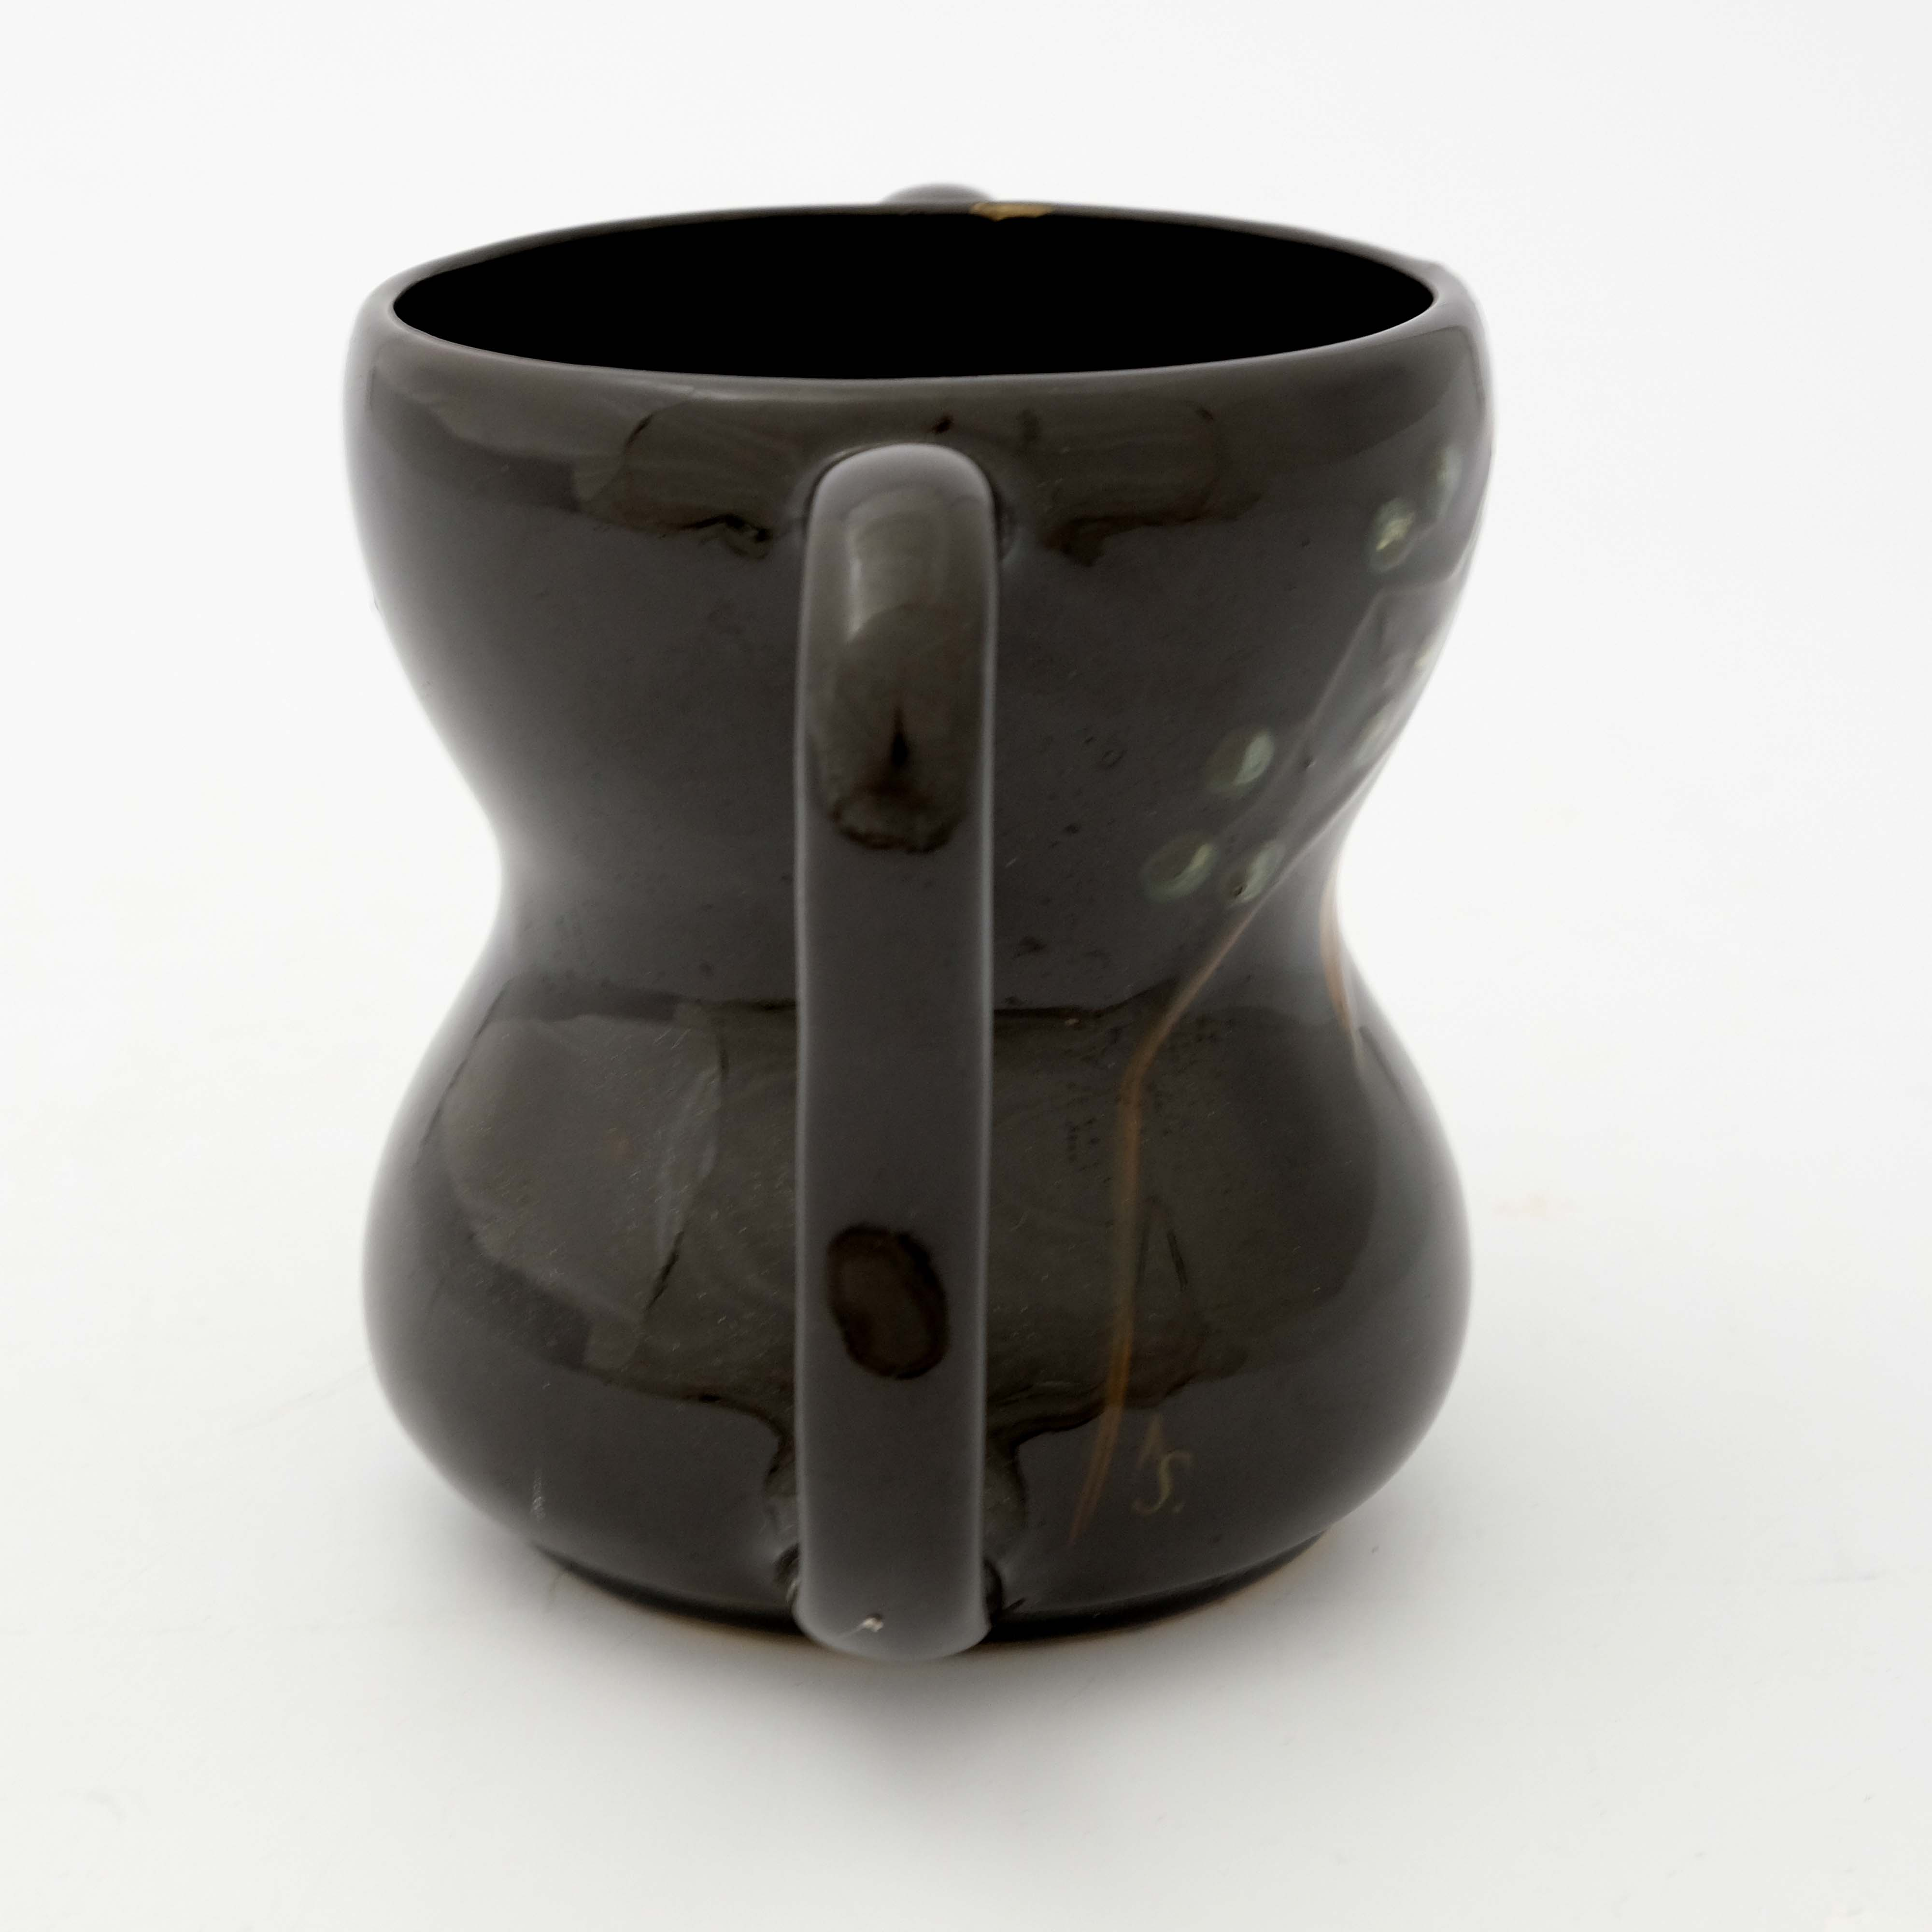 Weller Pottery, a Dickensware twin handled vase - Image 4 of 5